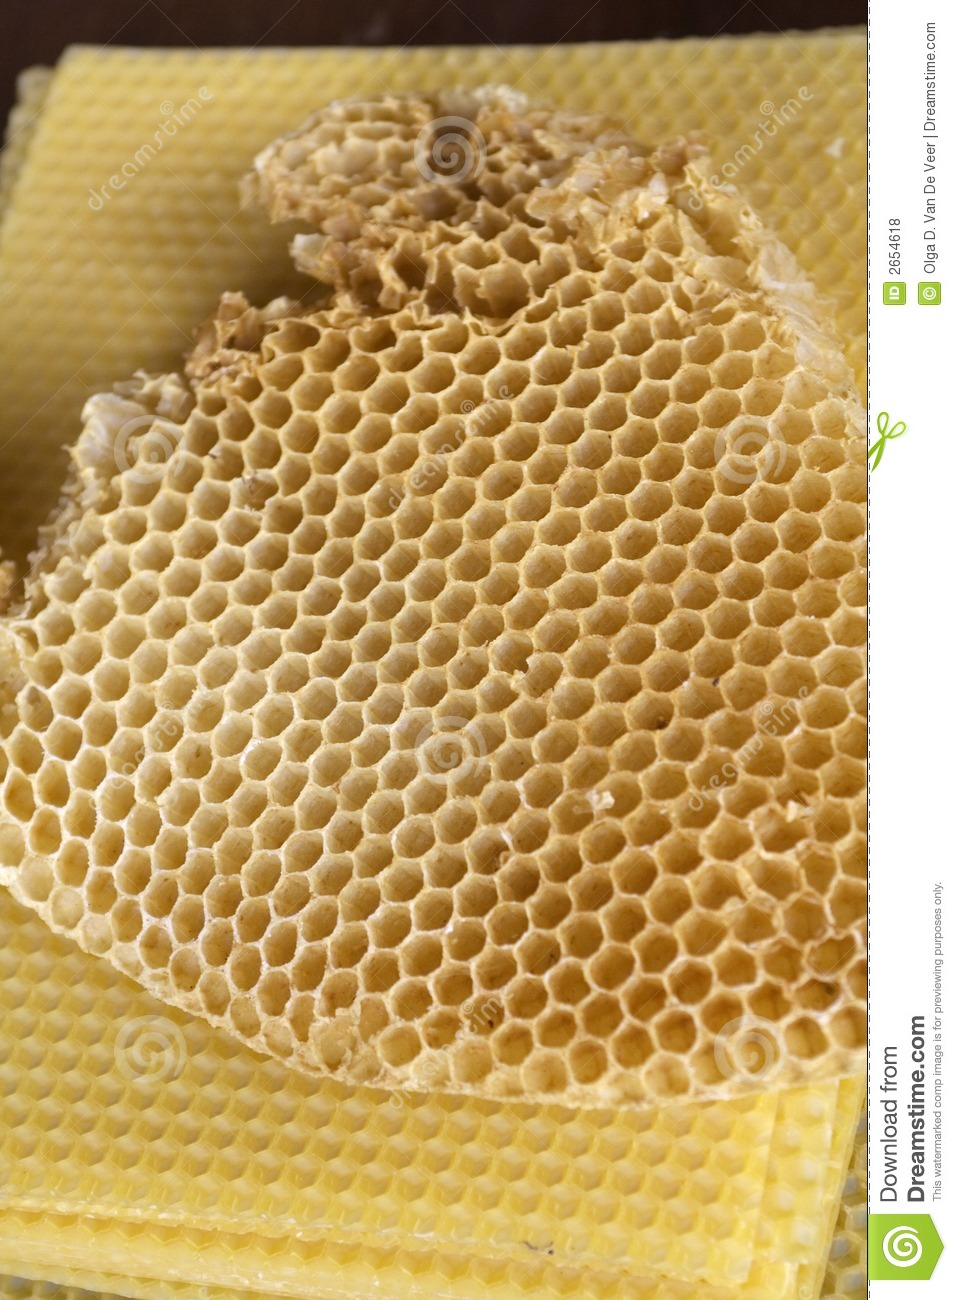 Beeswax Honeycomb Royalty Free Stock Photos Image 2654618